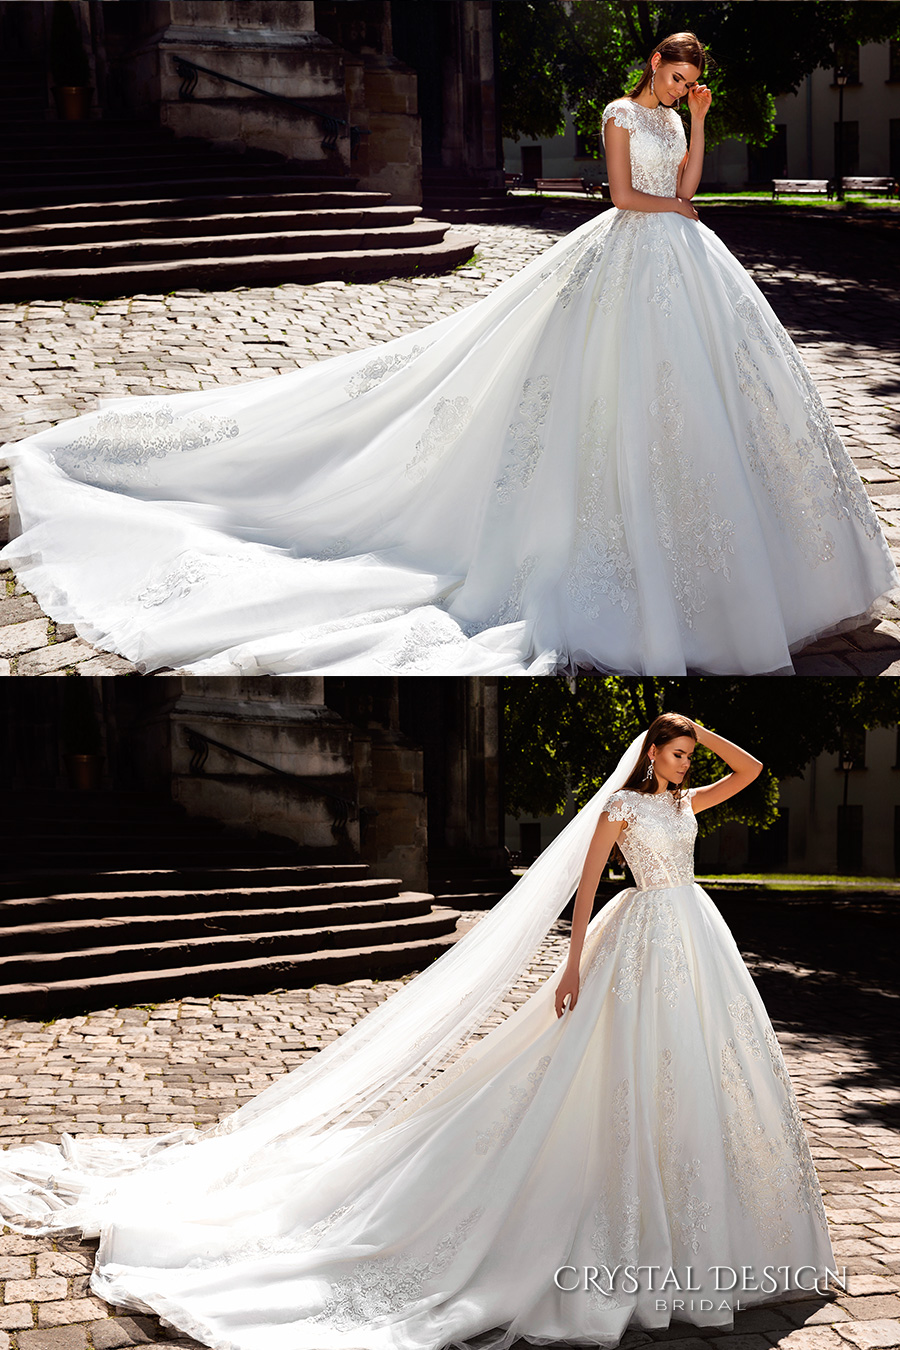 crystal design bridal 2016 cap sleeves jewel neckline heavily embellished bodice princess ball gown wedding dress monarch train (golden) fv